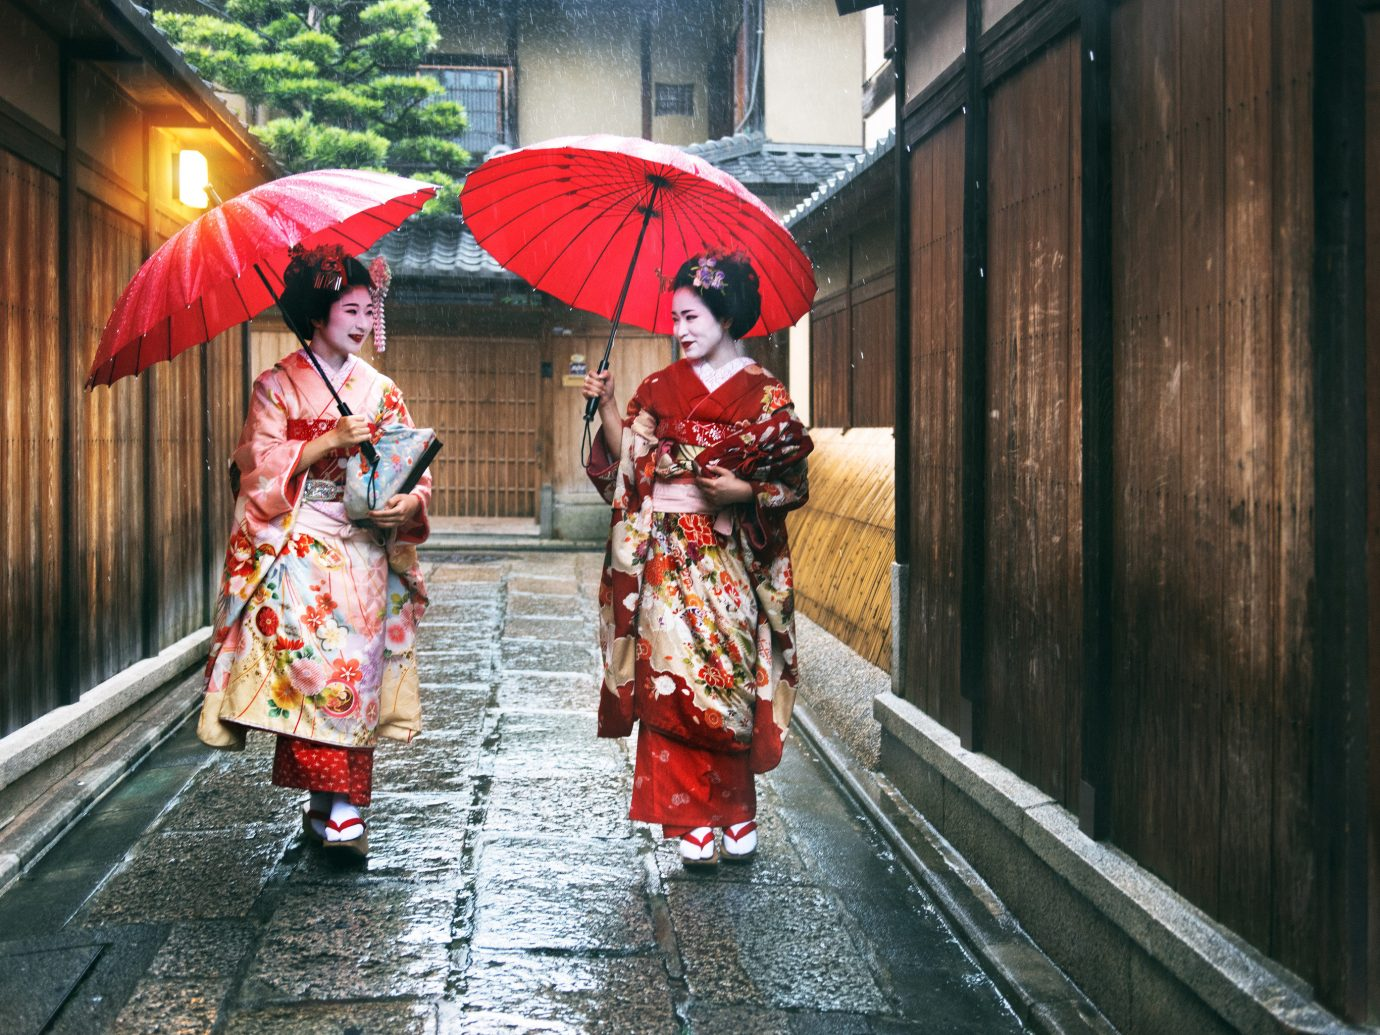 Jetsetter Guides umbrella outdoor color red clothing woman person rain walking street sidewalk Nature costume spring way accessory carrying tradition rainy